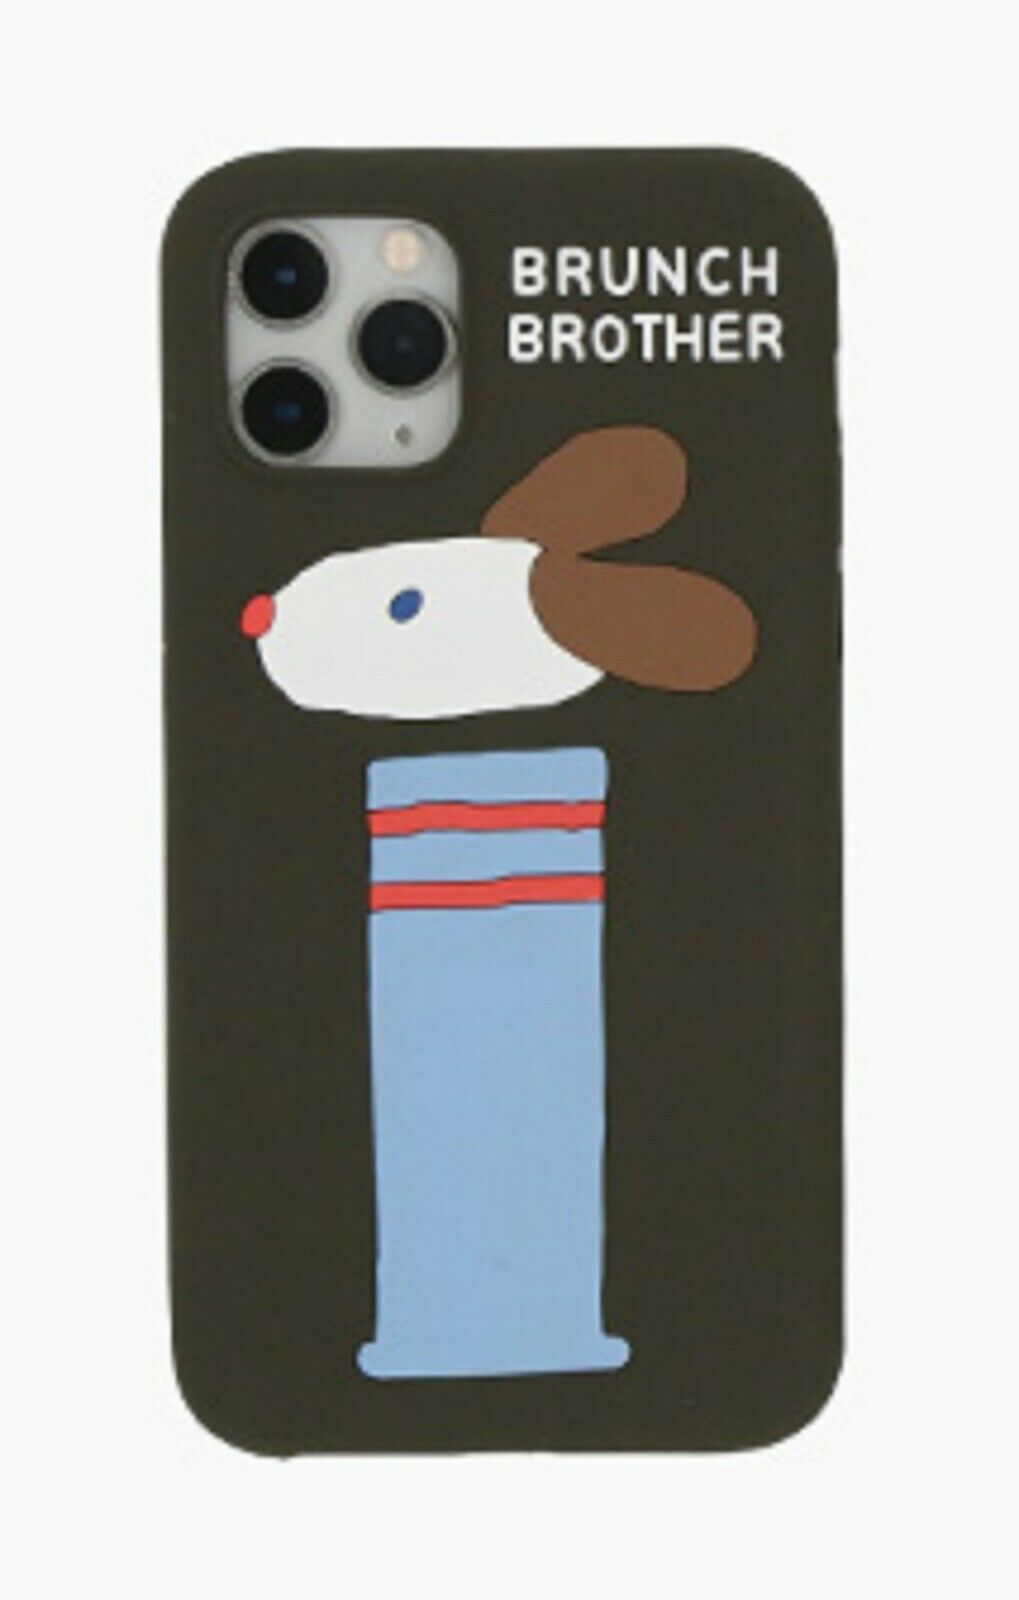 Brunch Brother Dog iPhone 11 Pro Slim Silicone Case Cover Protector Accessory